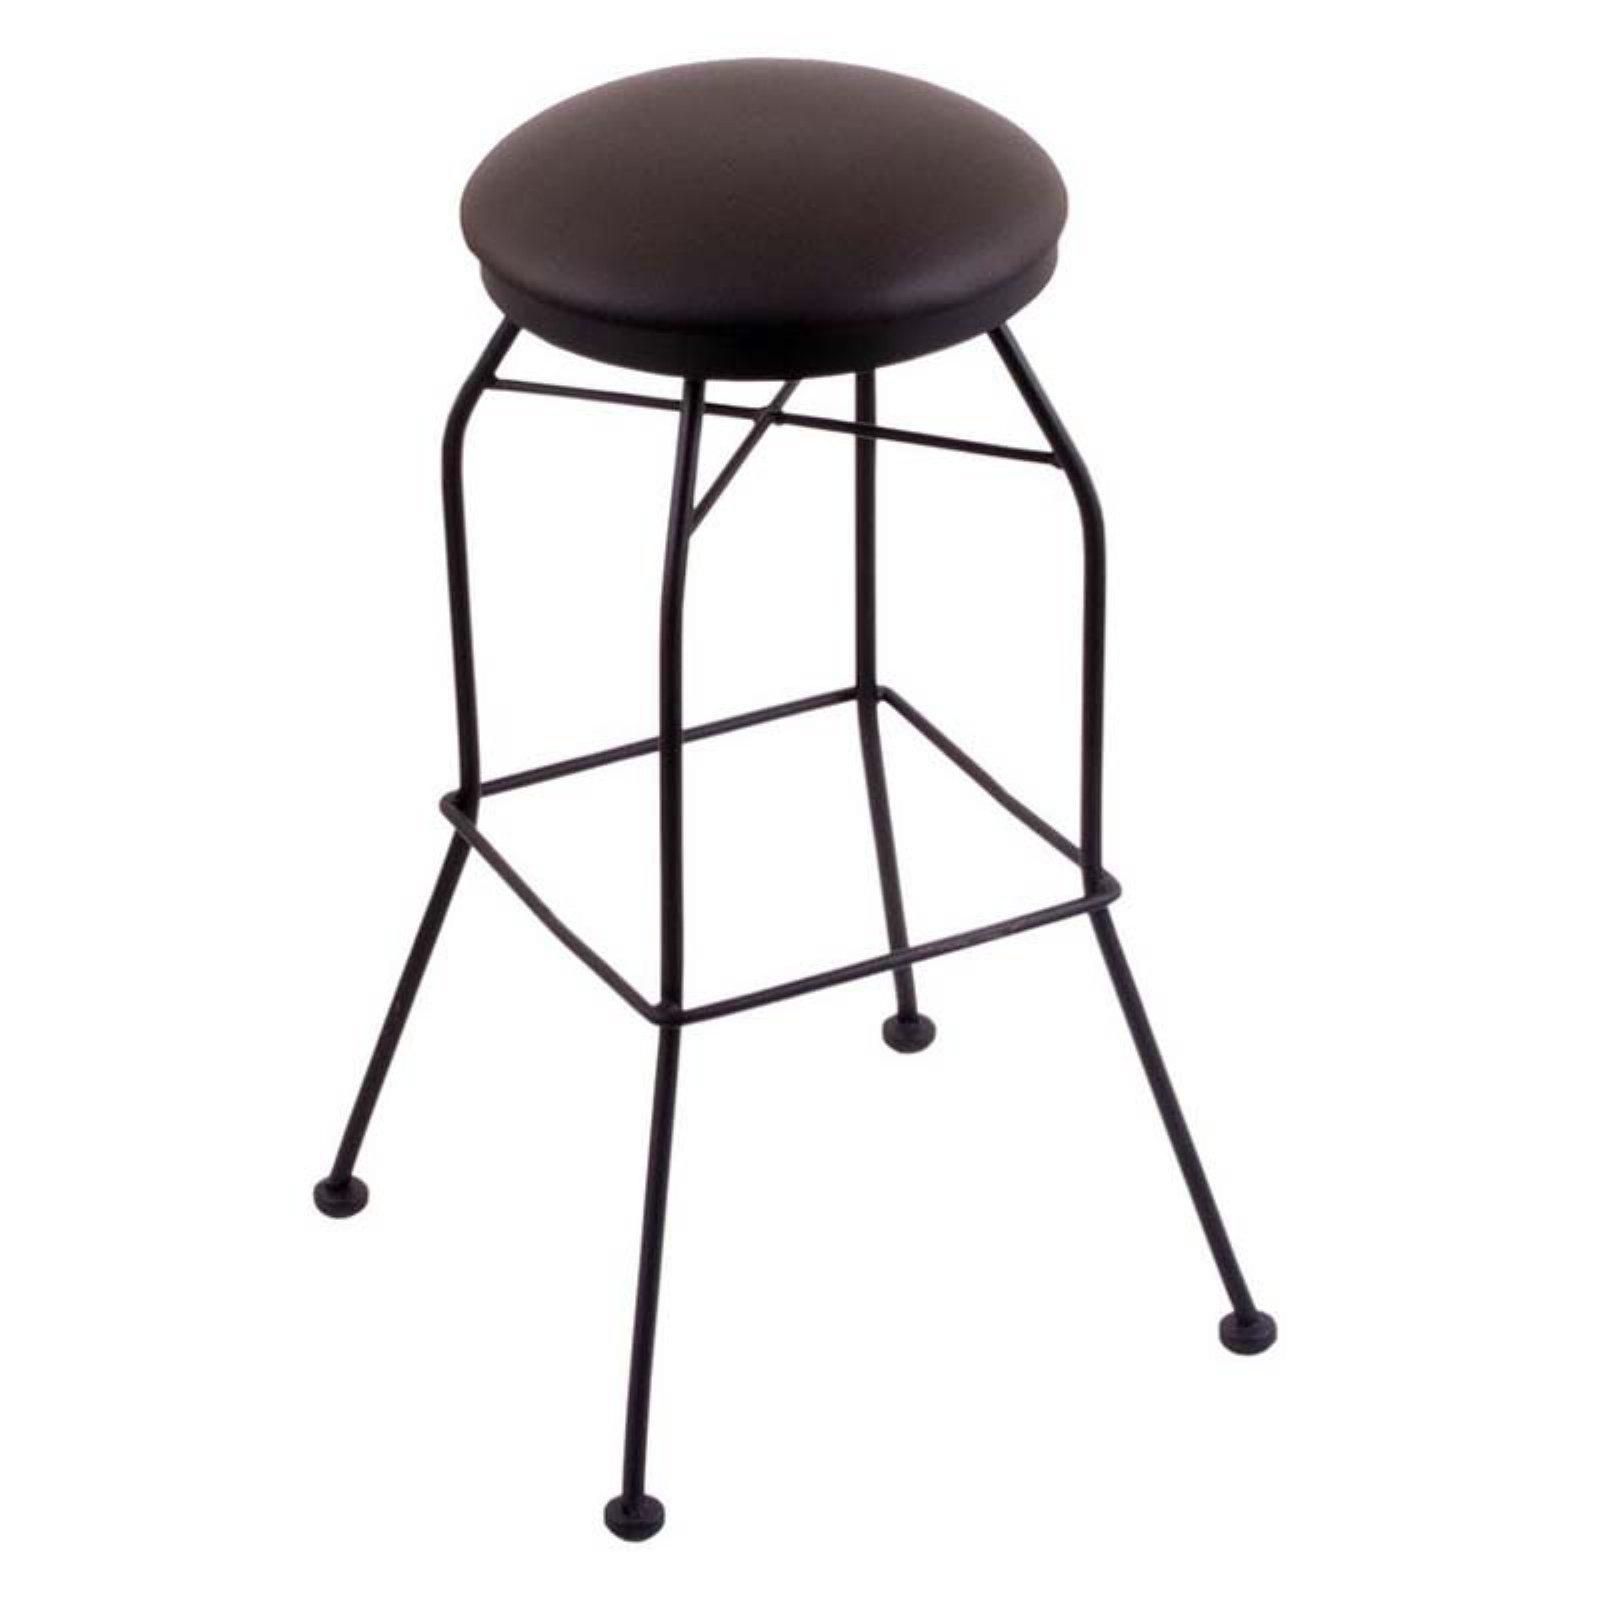 Peachy Holland Bar Stool 30 In Backless Swivel Bar Stool With Faux Squirreltailoven Fun Painted Chair Ideas Images Squirreltailovenorg